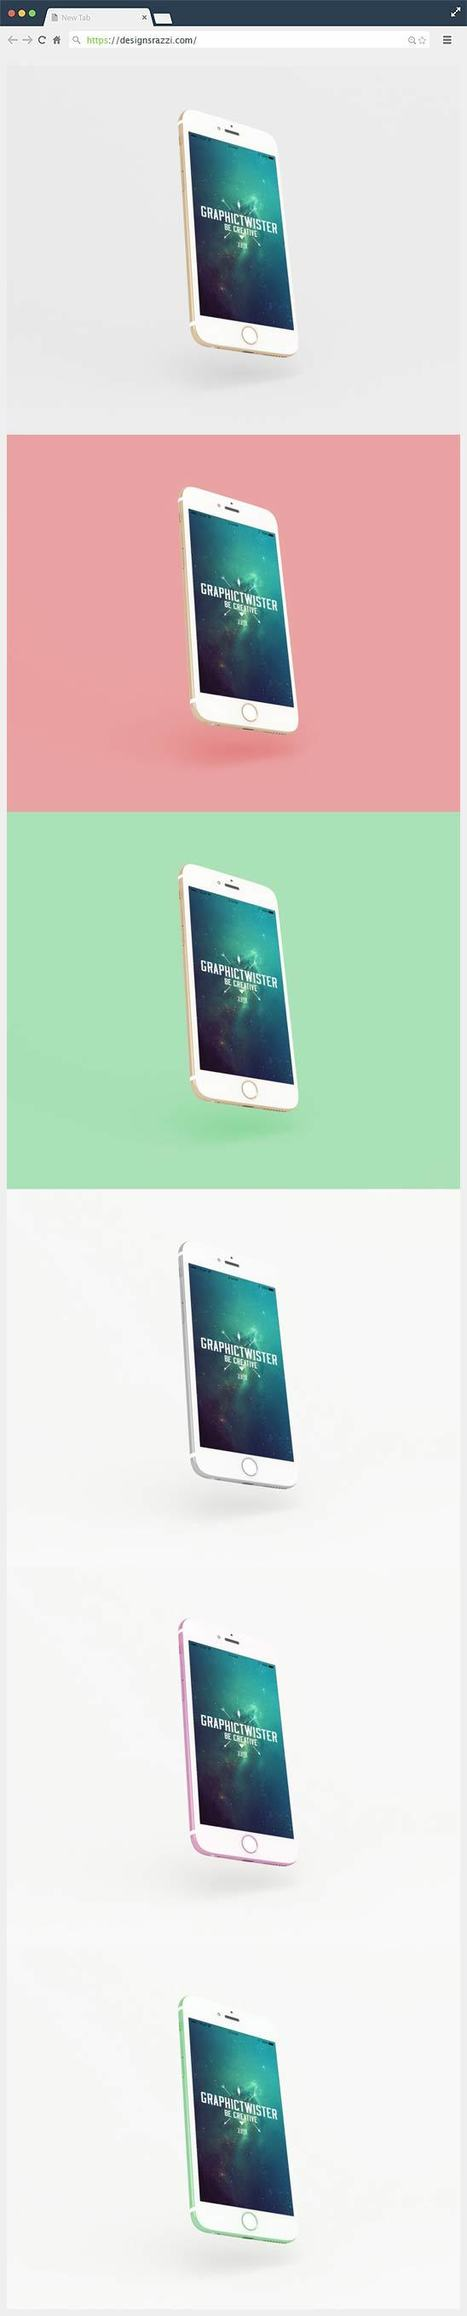 Free PSD Gravity iPhone 6s Mockup | Designrazzi | Designrazzi | Scoop.it